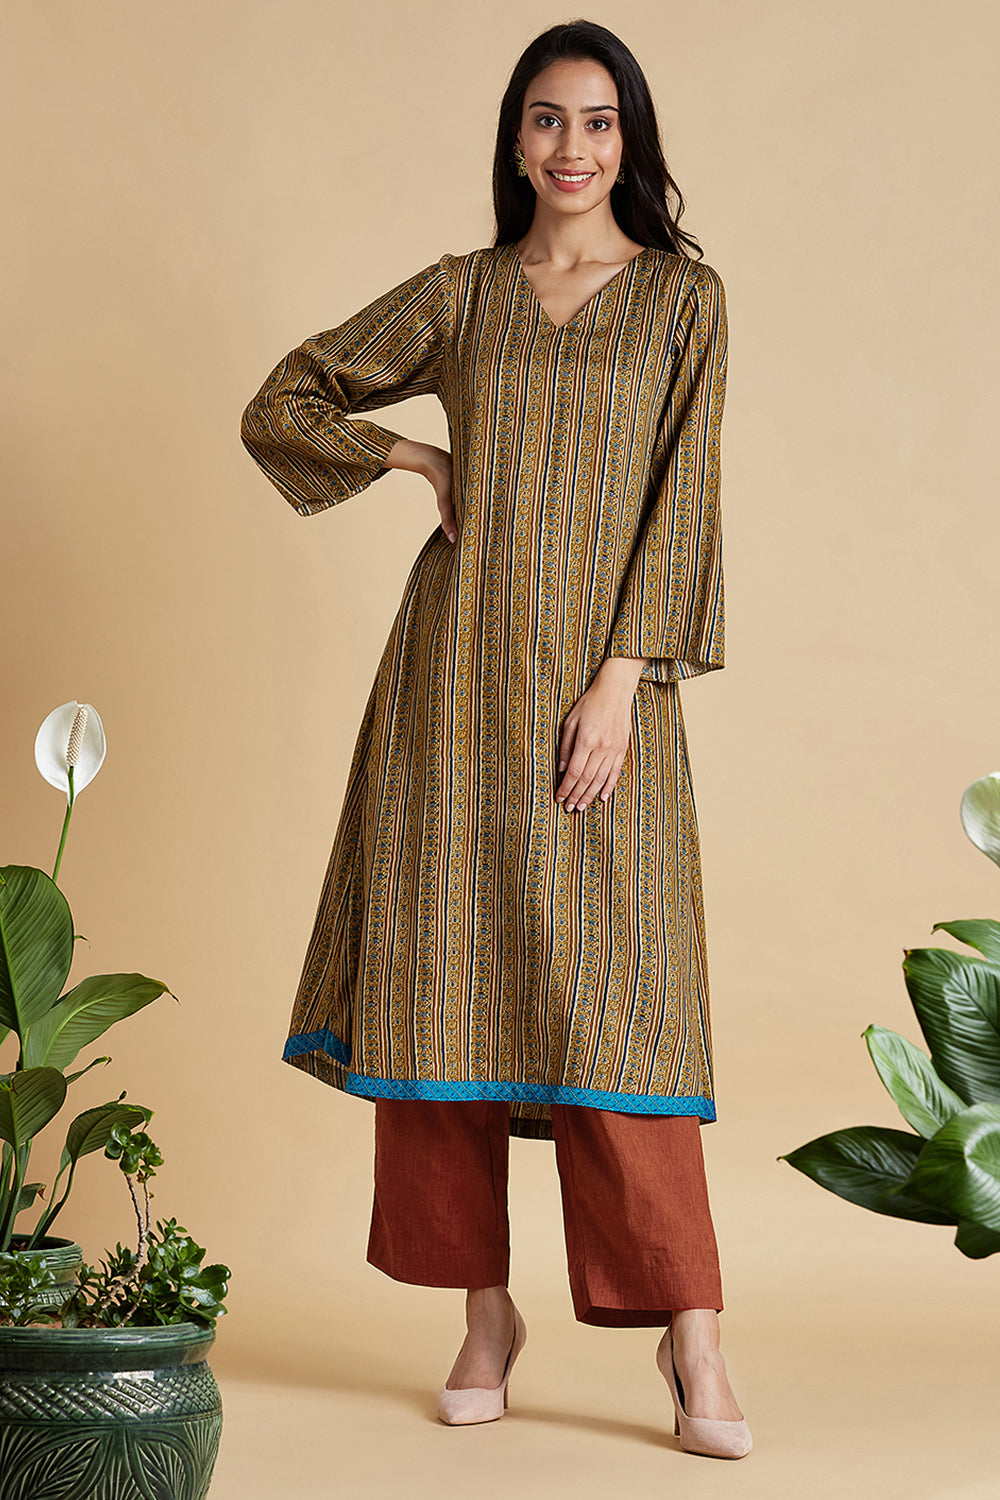 a-line kurta - classic gold & tinge of blue